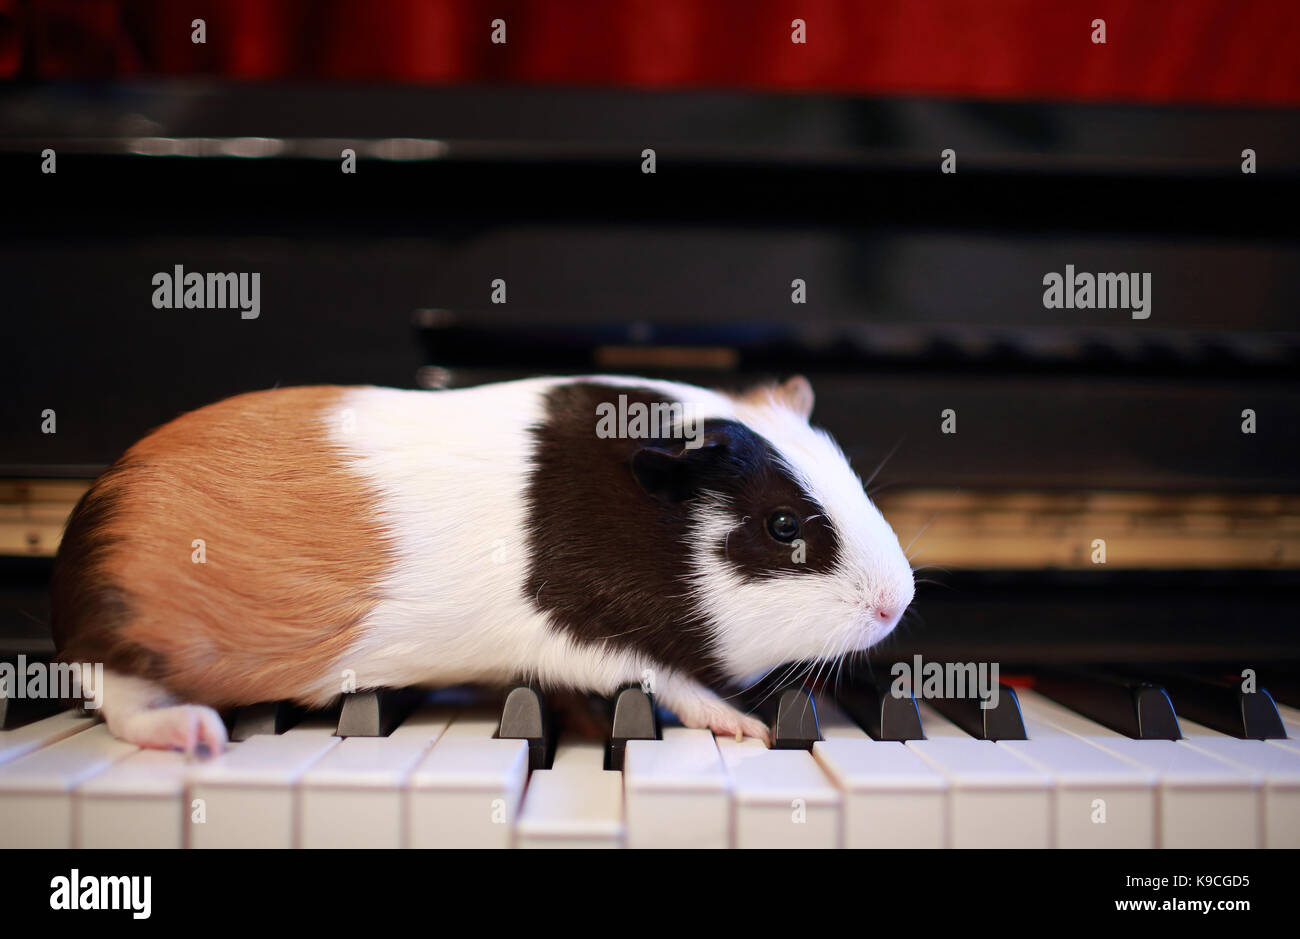 Guinea pig walk on the piano, play talent on music Stock